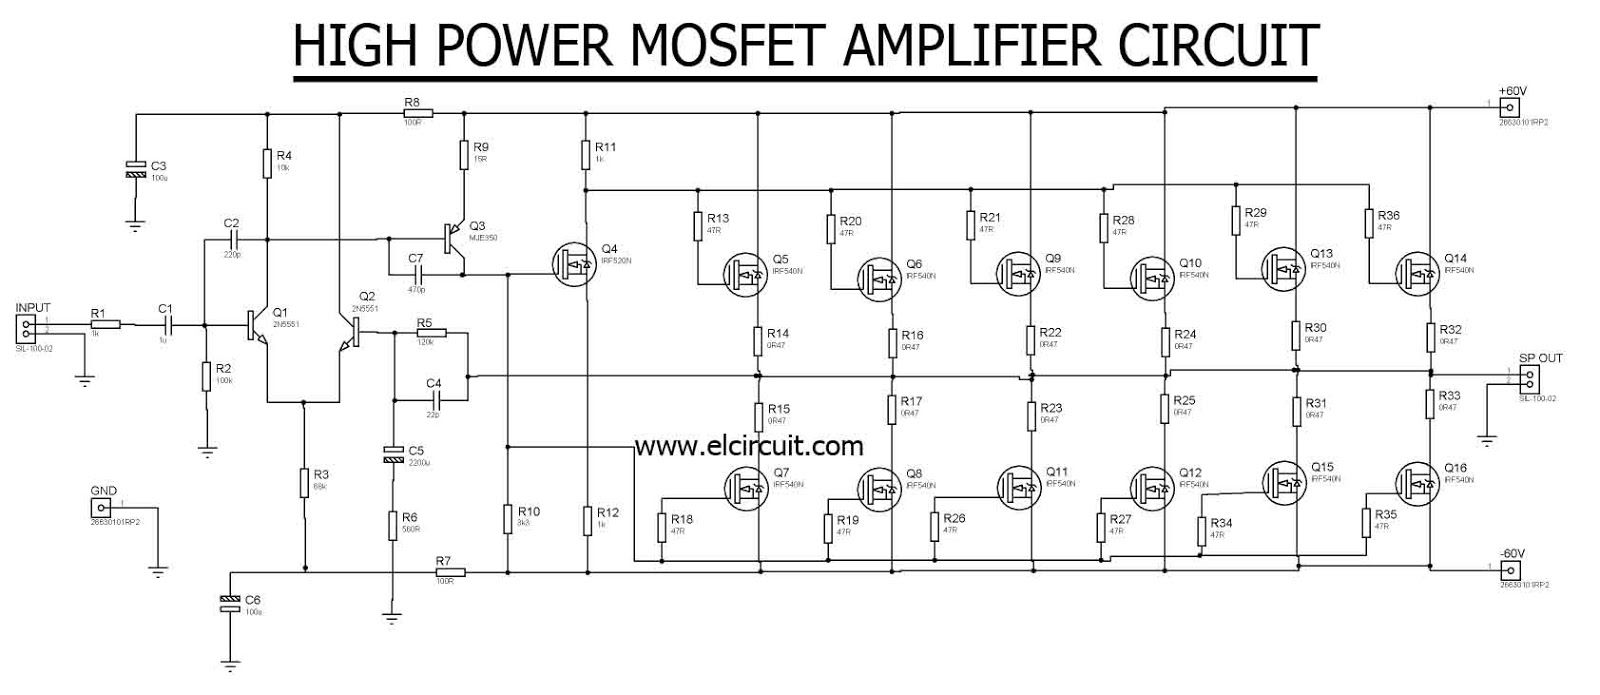 medium resolution of dj amplifier wiring diagram wiring diagram perfomance dj amp wiring diagram wiring diagram dj amplifier wiring